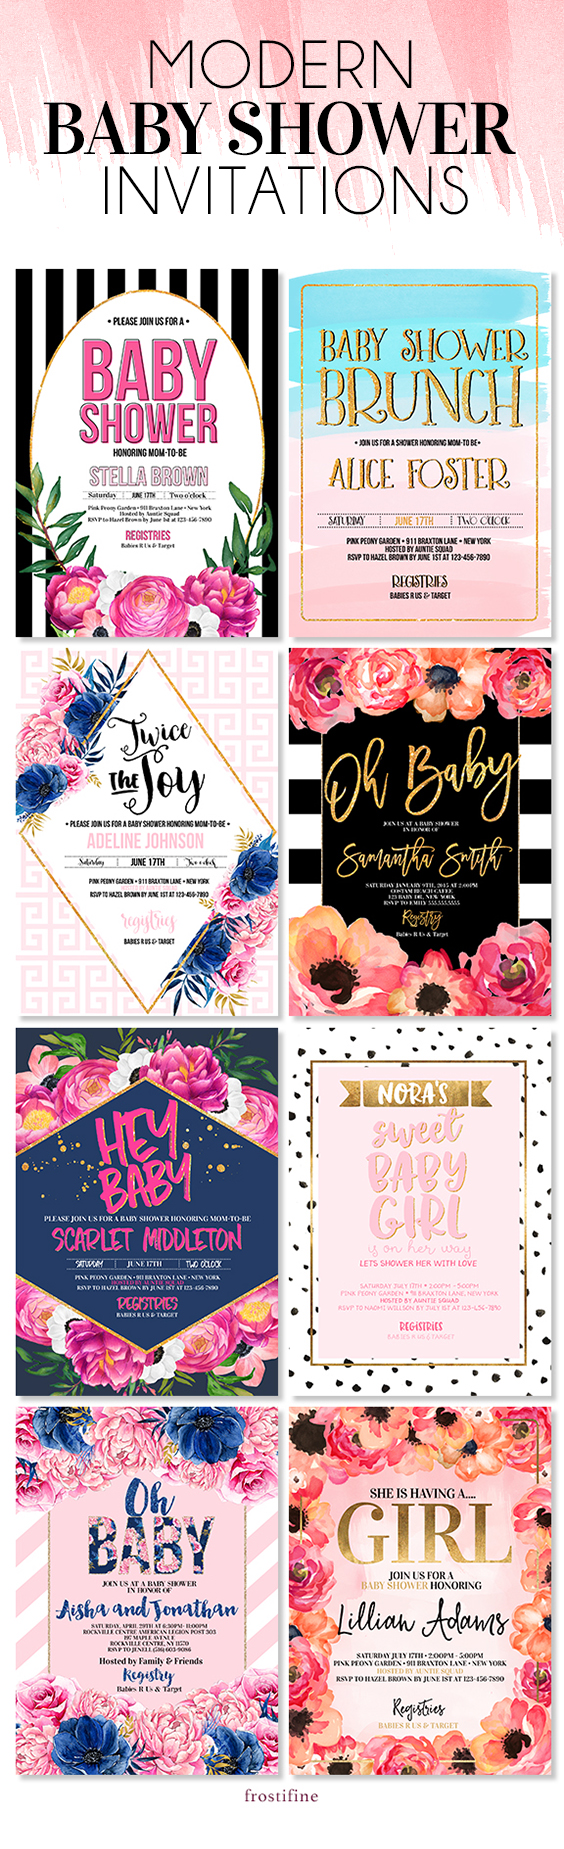 Modern, authentic and trendy baby shower invitations for your DIY ...